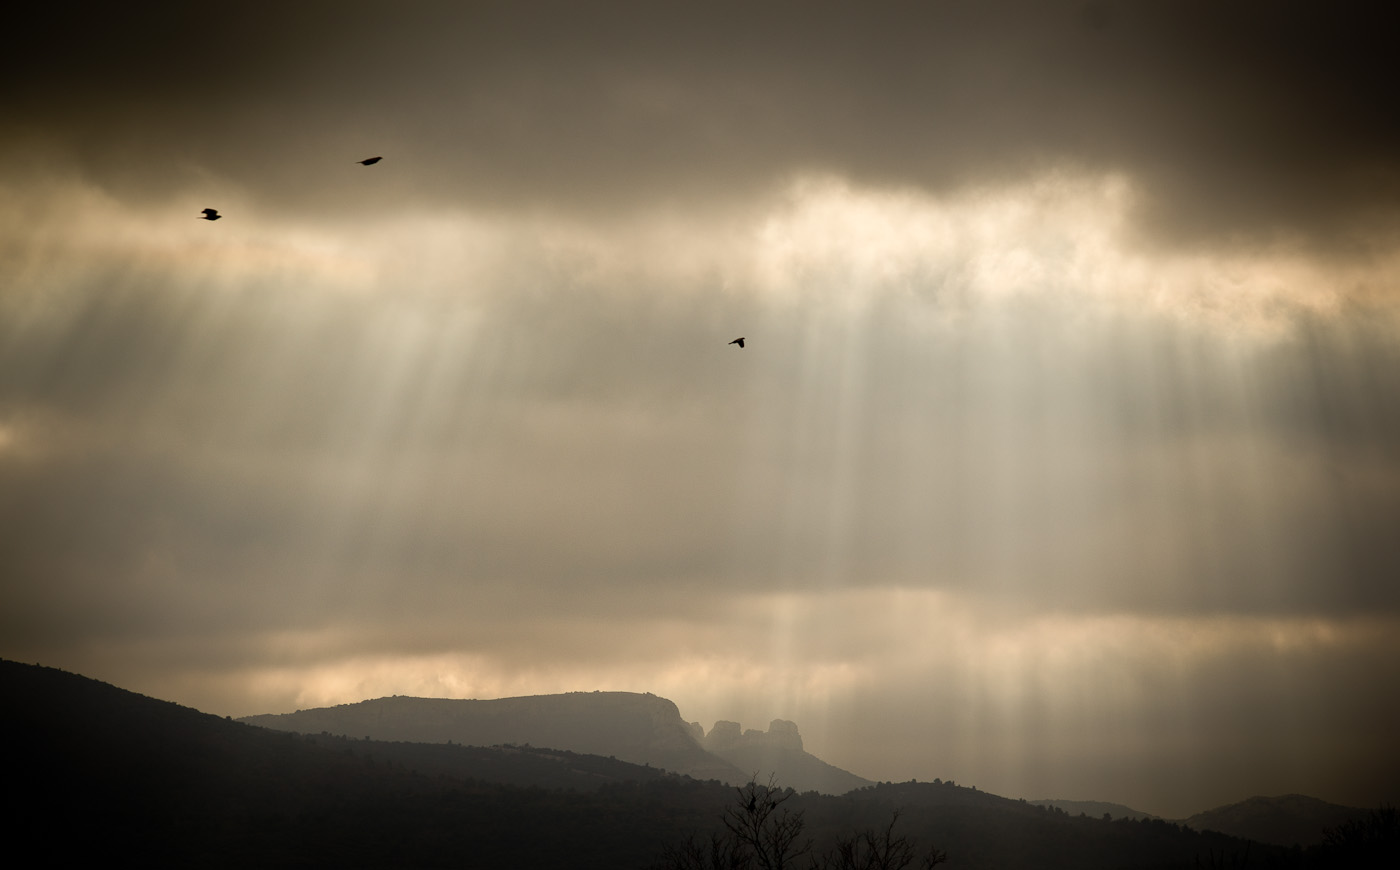 Light rays through the clouds over the Sainte Baume in Provence. Toy Camera mode on the Sony NEX-5N with a Leica M Elmarit 90/2.8 lens